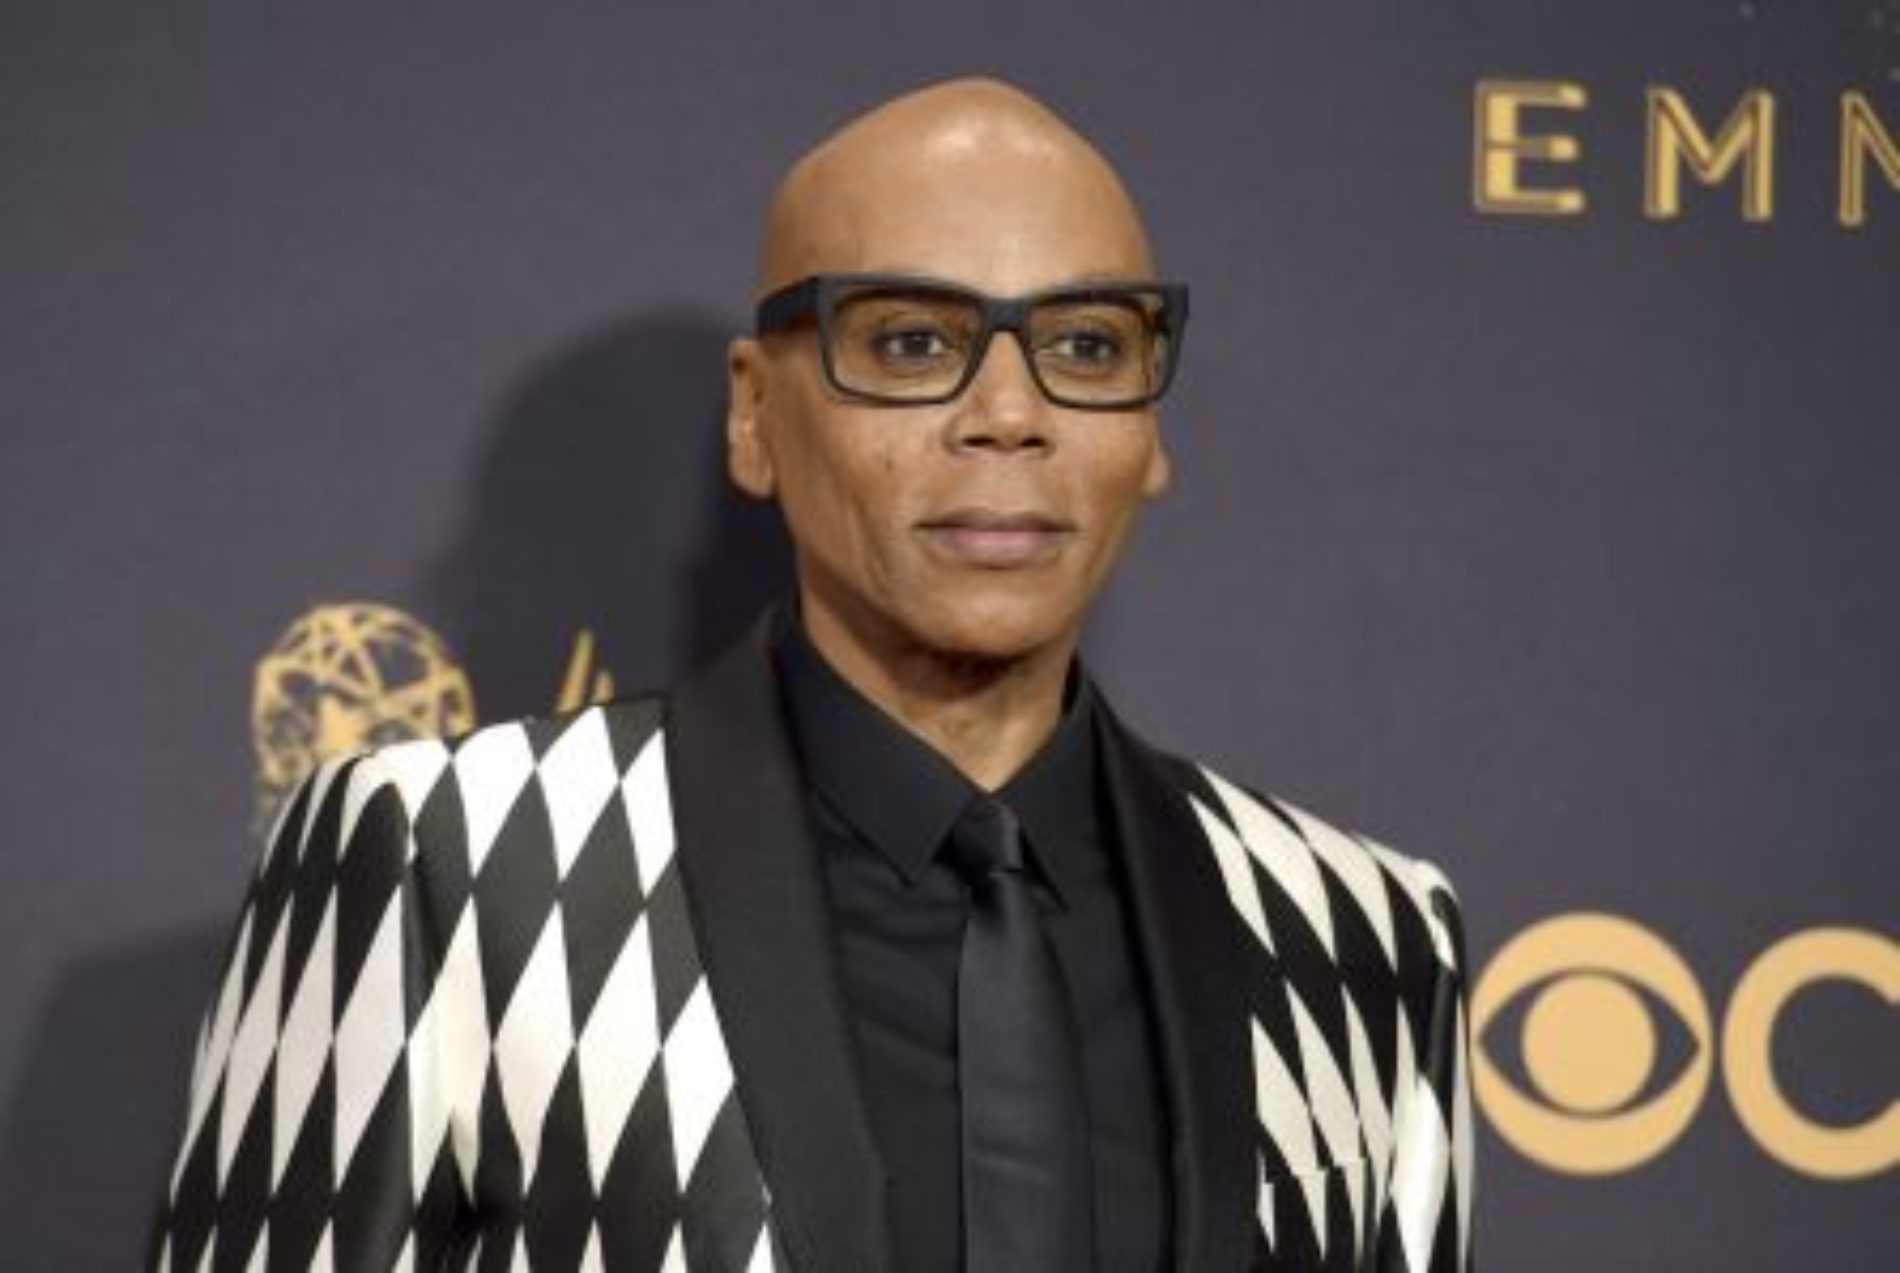 RuPaul Incites Outrage With His Transmisogyny And Comments About Openly Trans Contestants On 'Drag Race'